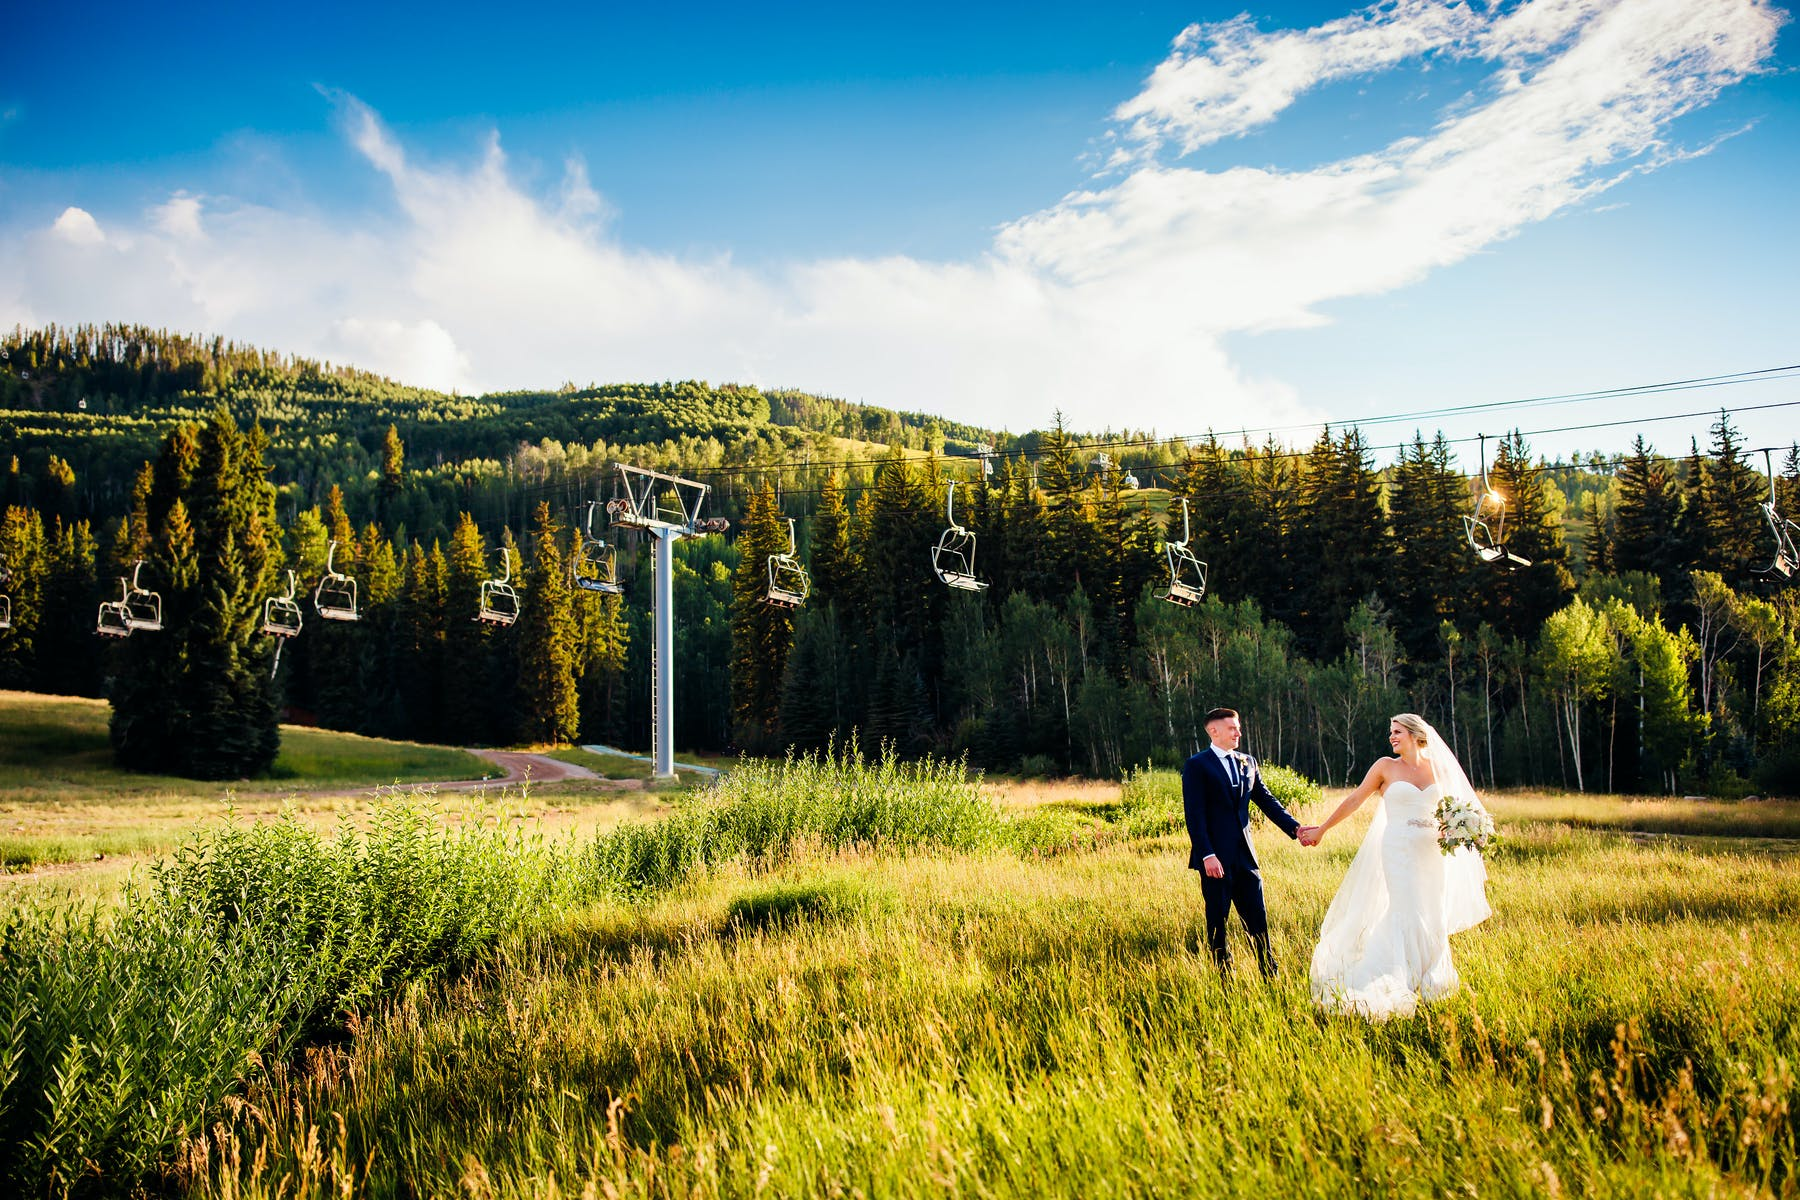 Colorado Mountain Wedding Venue Ski Lift